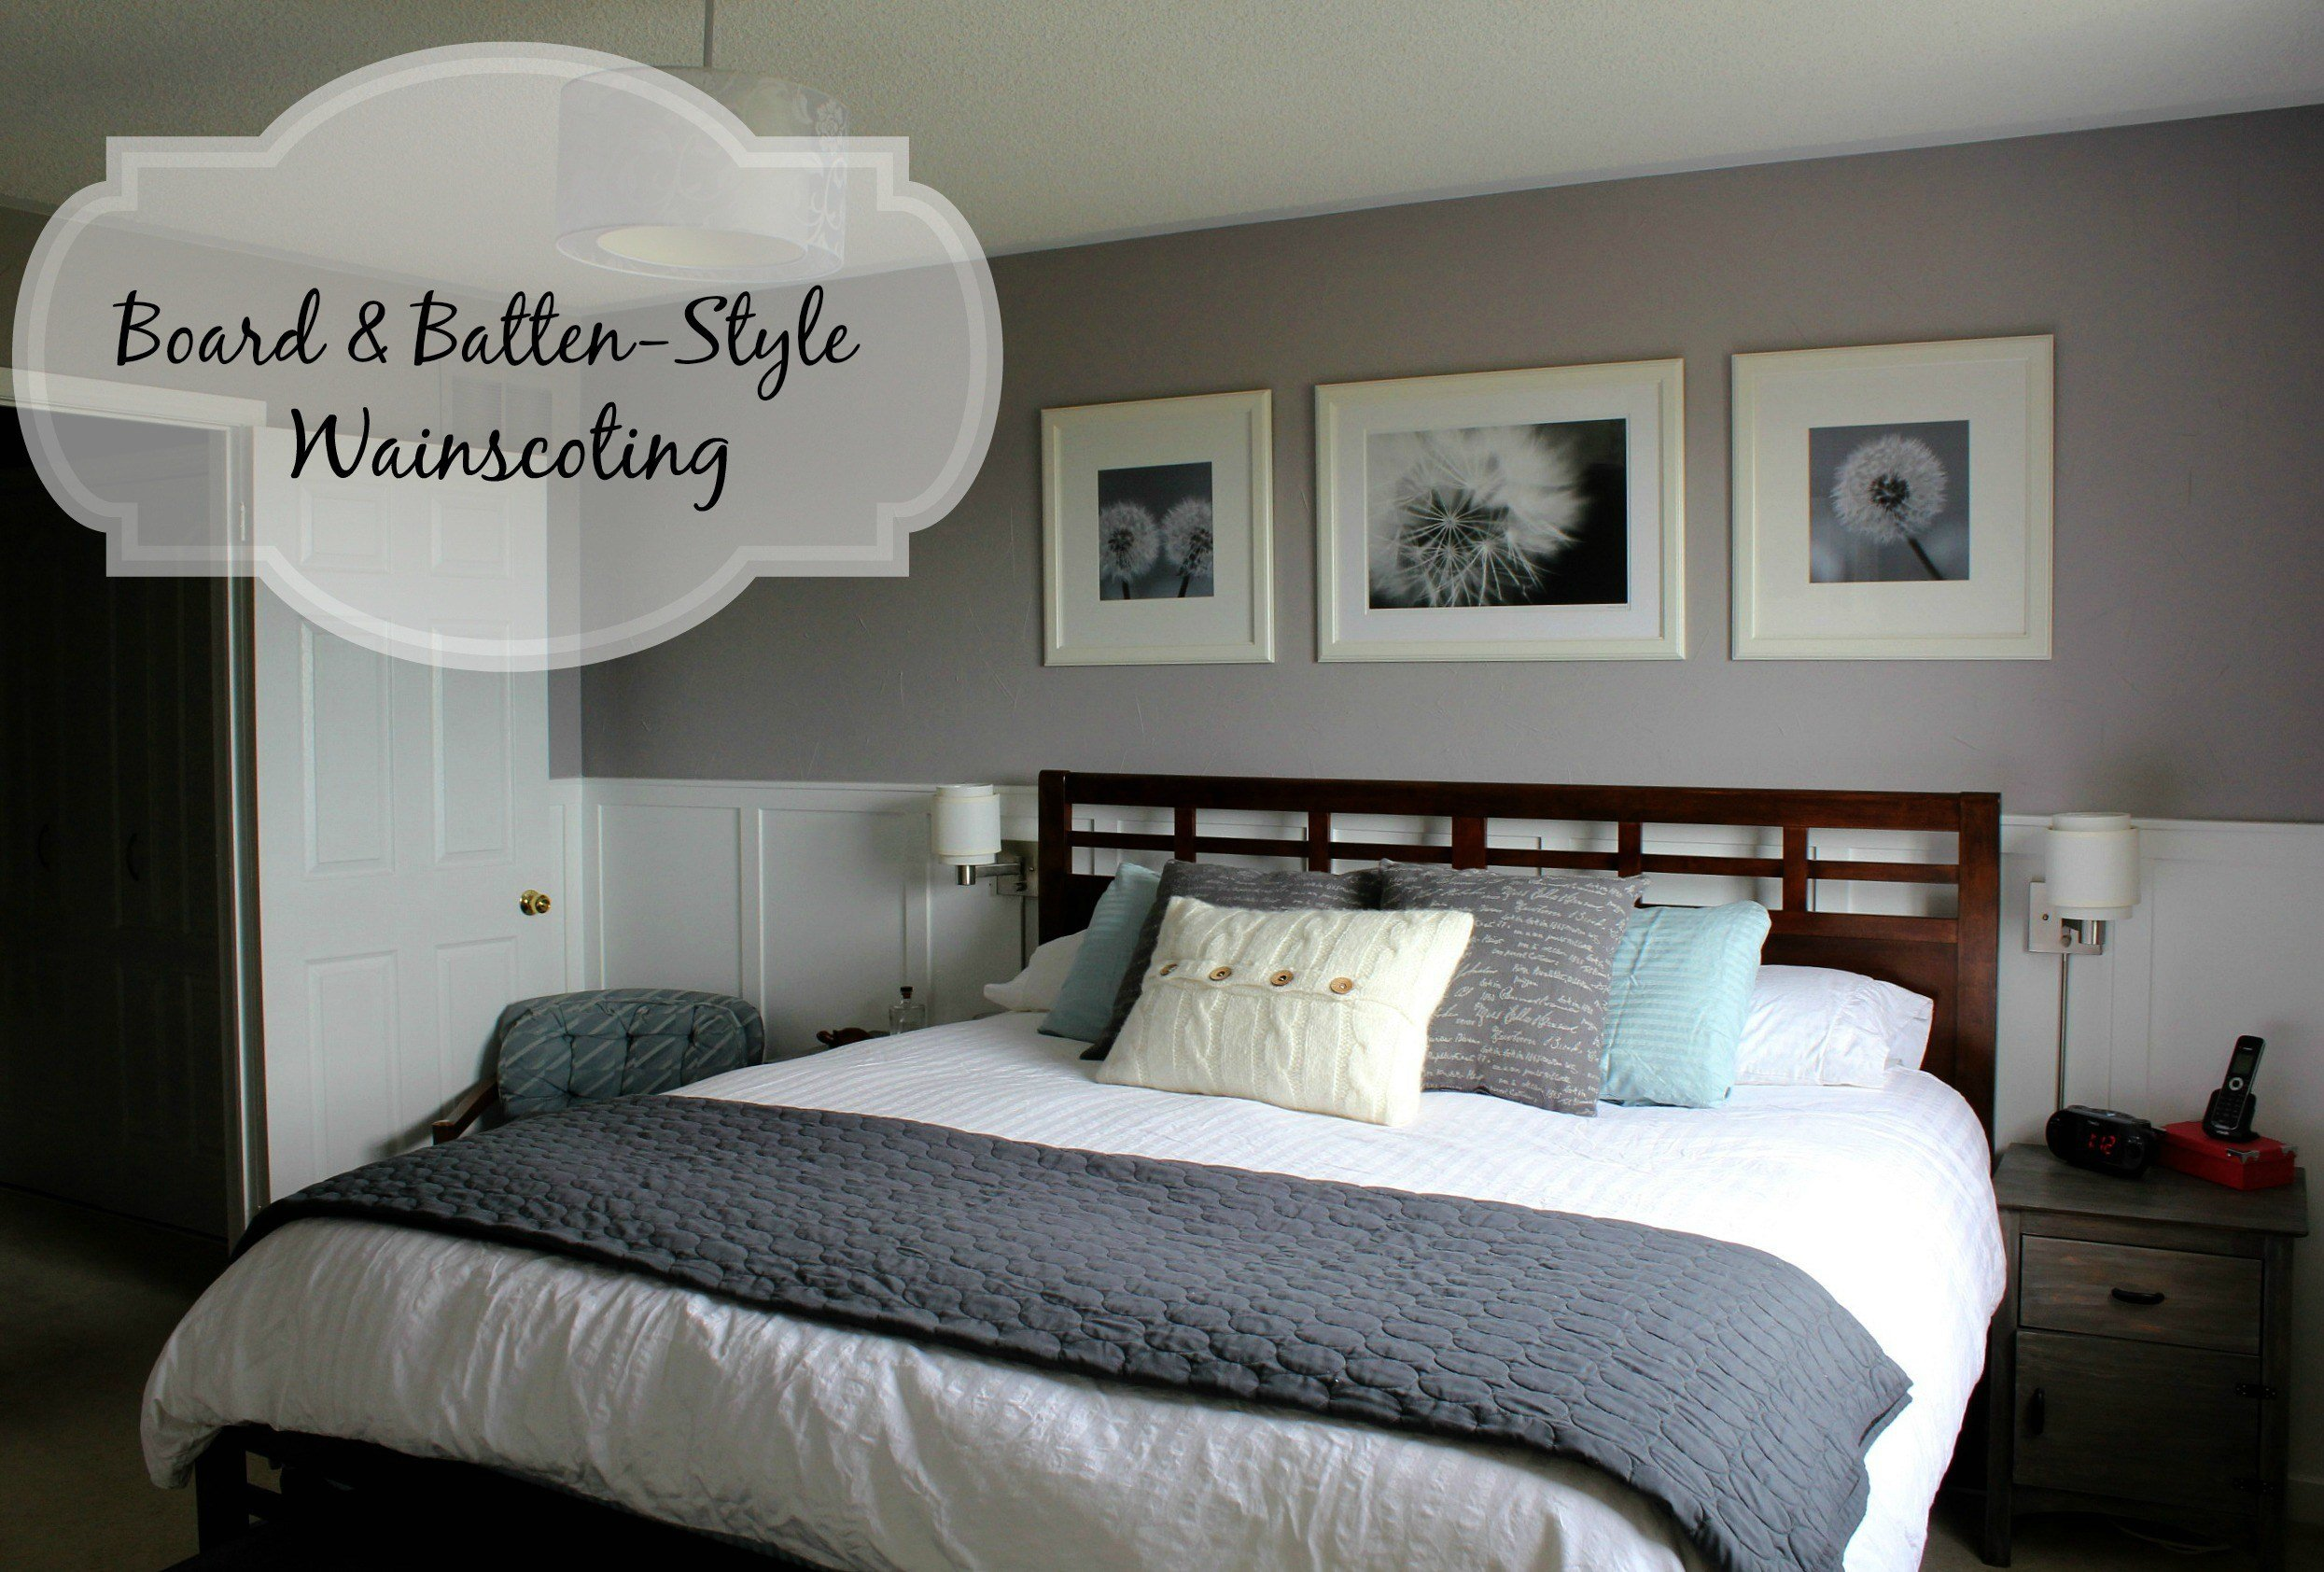 Best Turtles And Tails Upgrade Your Bedroom With Board And With Pictures